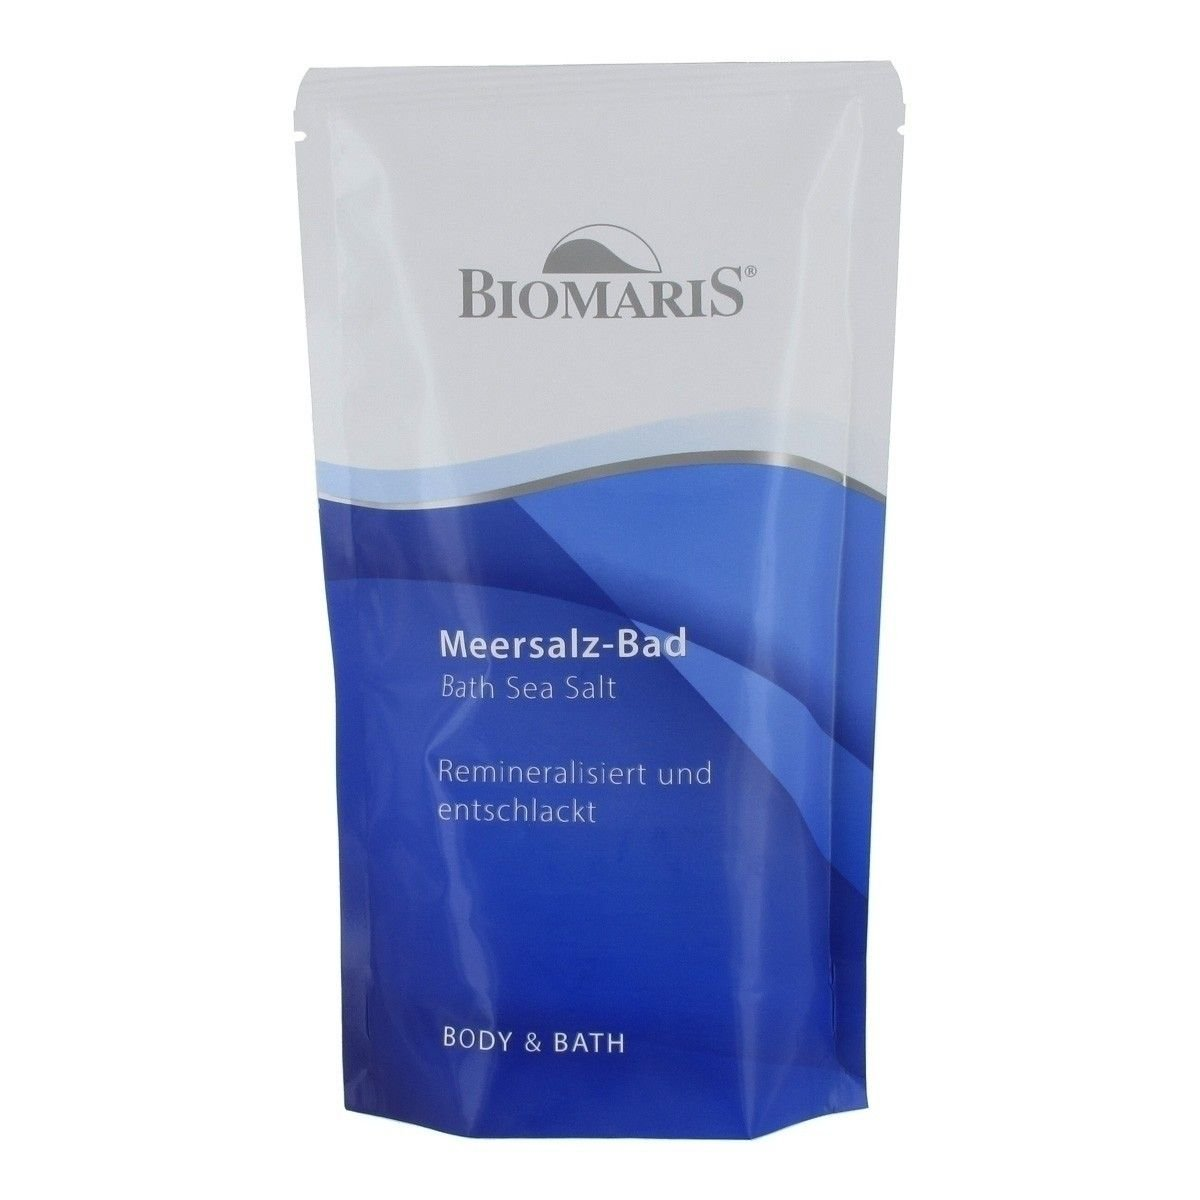 Afbeelding van Biomaris Bath Sea Salt 500 gr Body Care Huidirritatie Beauty